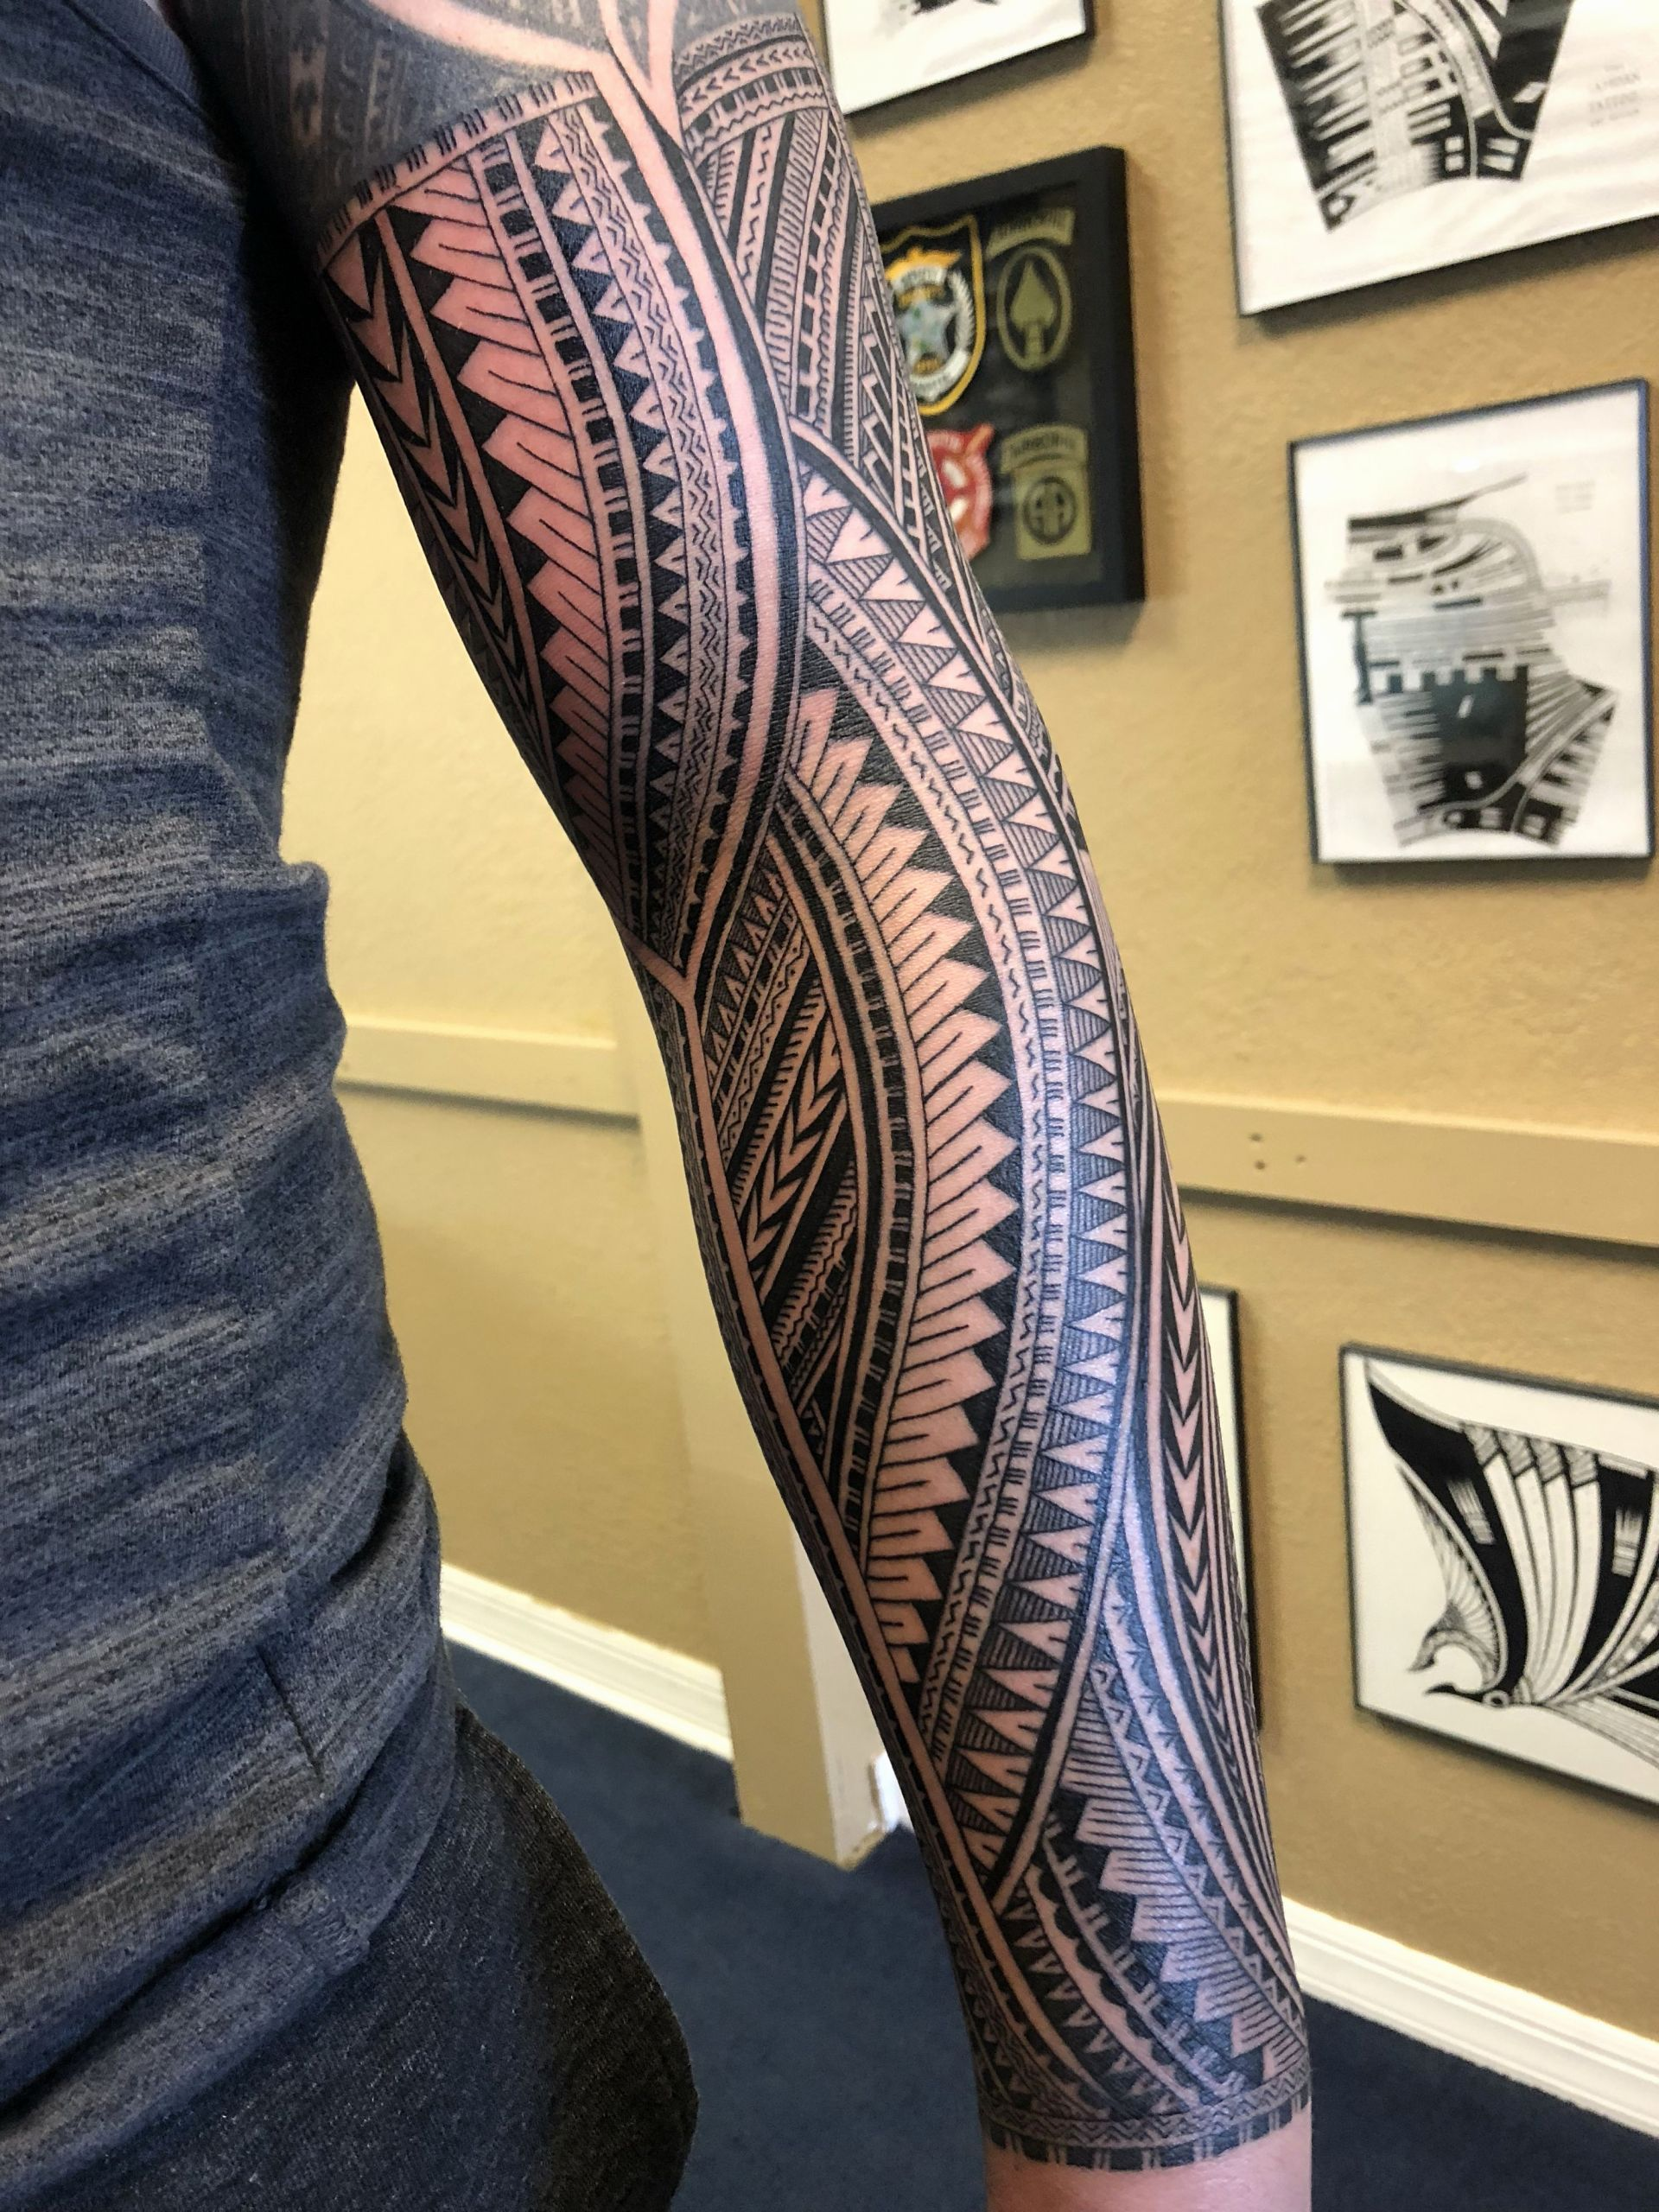 Tattoo Ideas For The Forearm Fresh Beautiful Samoan Inspired Arm Sleeve By Michael Fatutoa In 2020 Tribal Arm Tattoos Maori Tattoo Sleeve Tattoos